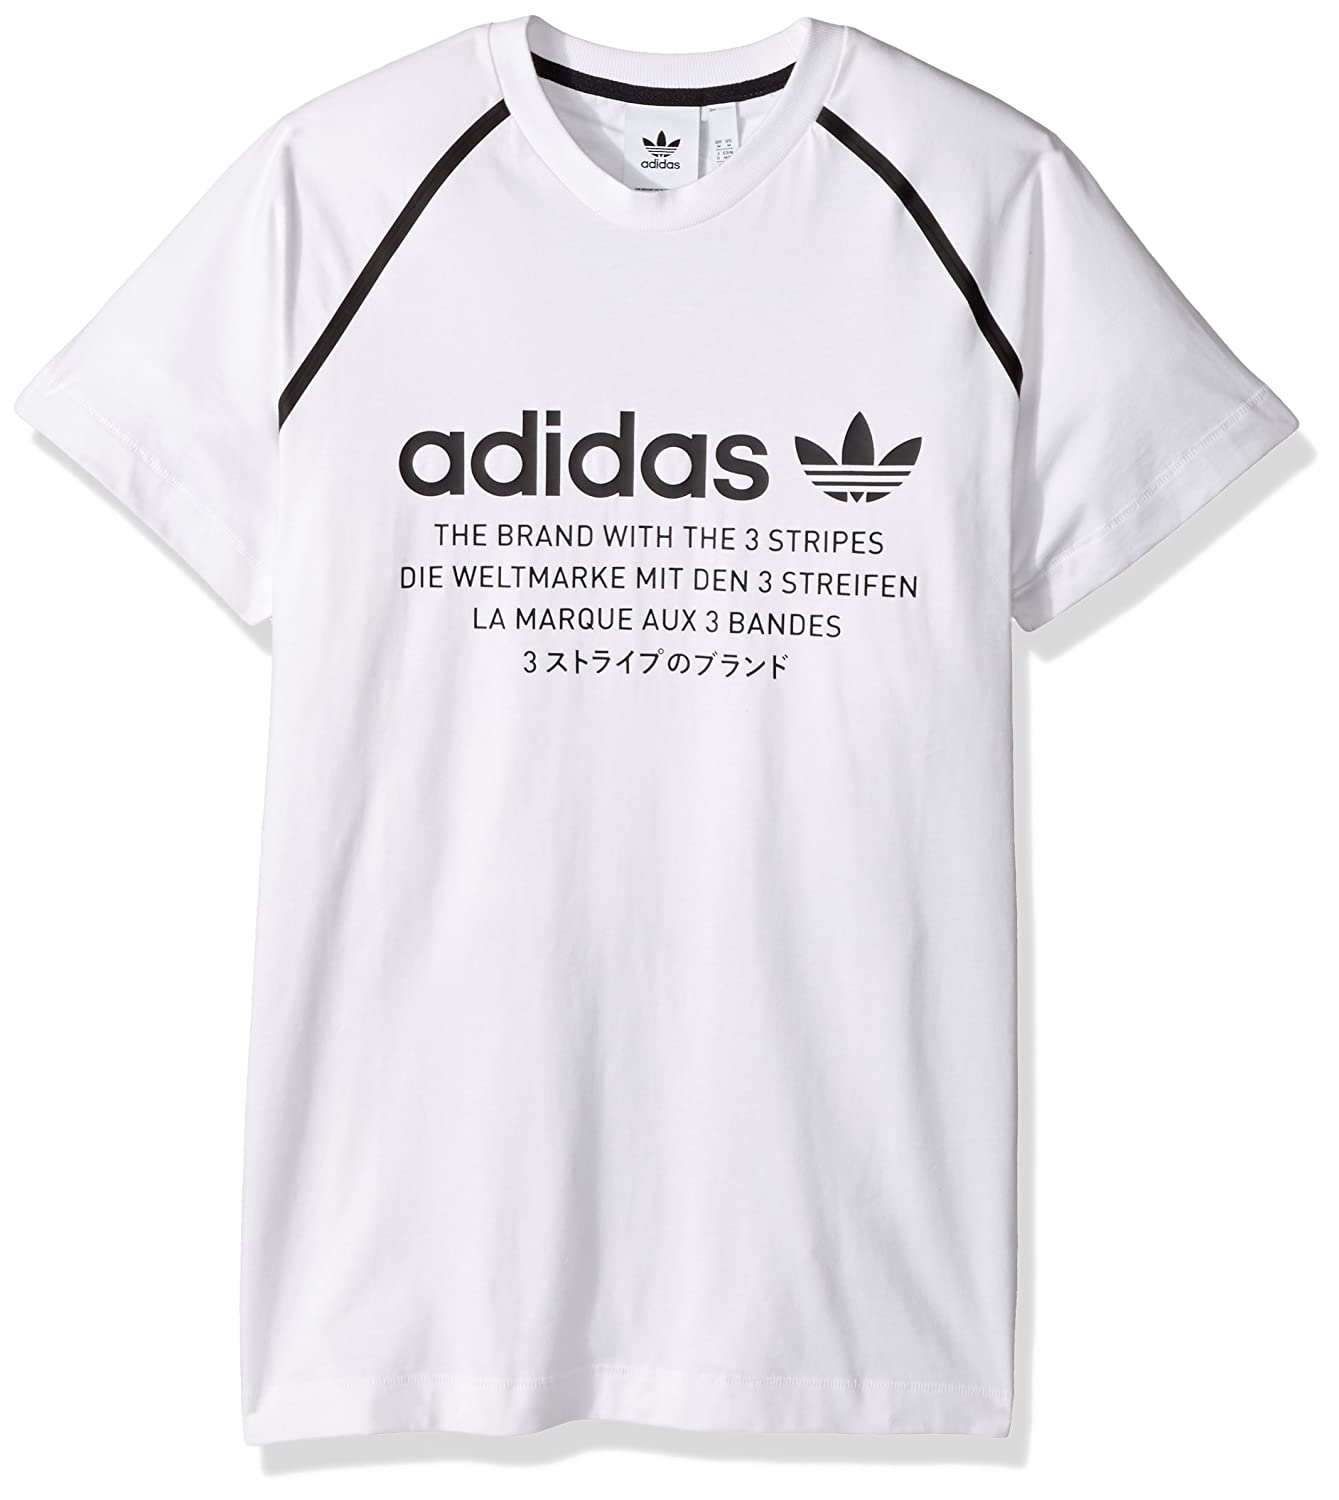 adidas Originals NMD T Shirt White